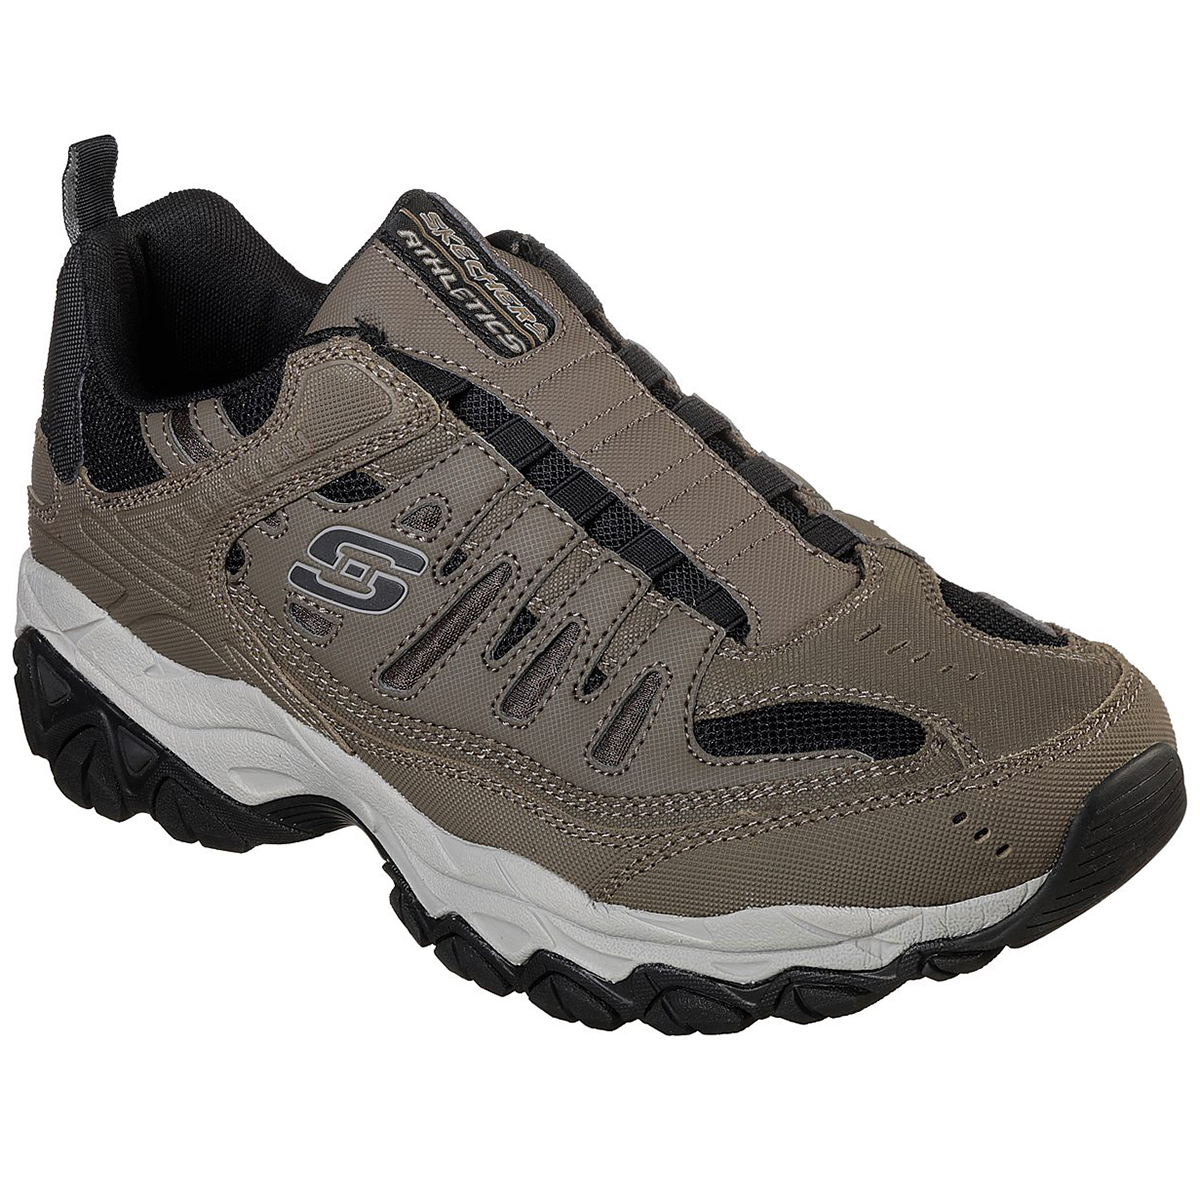 Skechers Men's After Burn-M. Fit Sneakers, Wide - Brown, 9